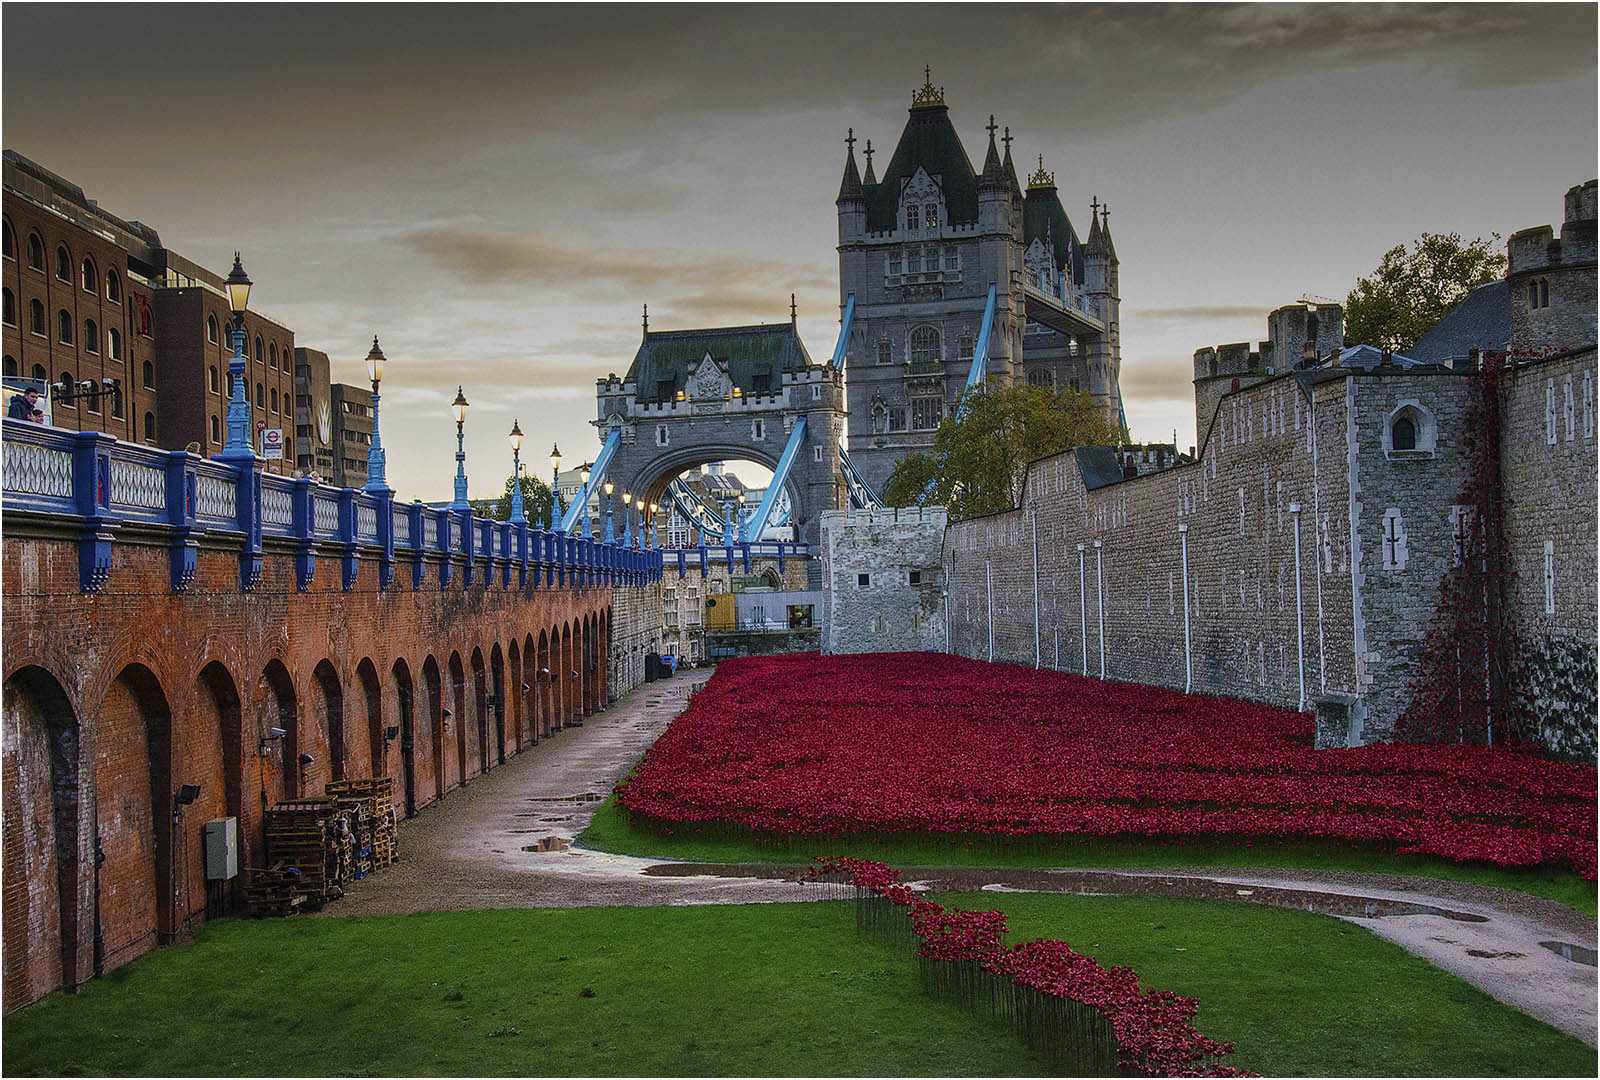 Rememberance Poppies in the Tower Moat